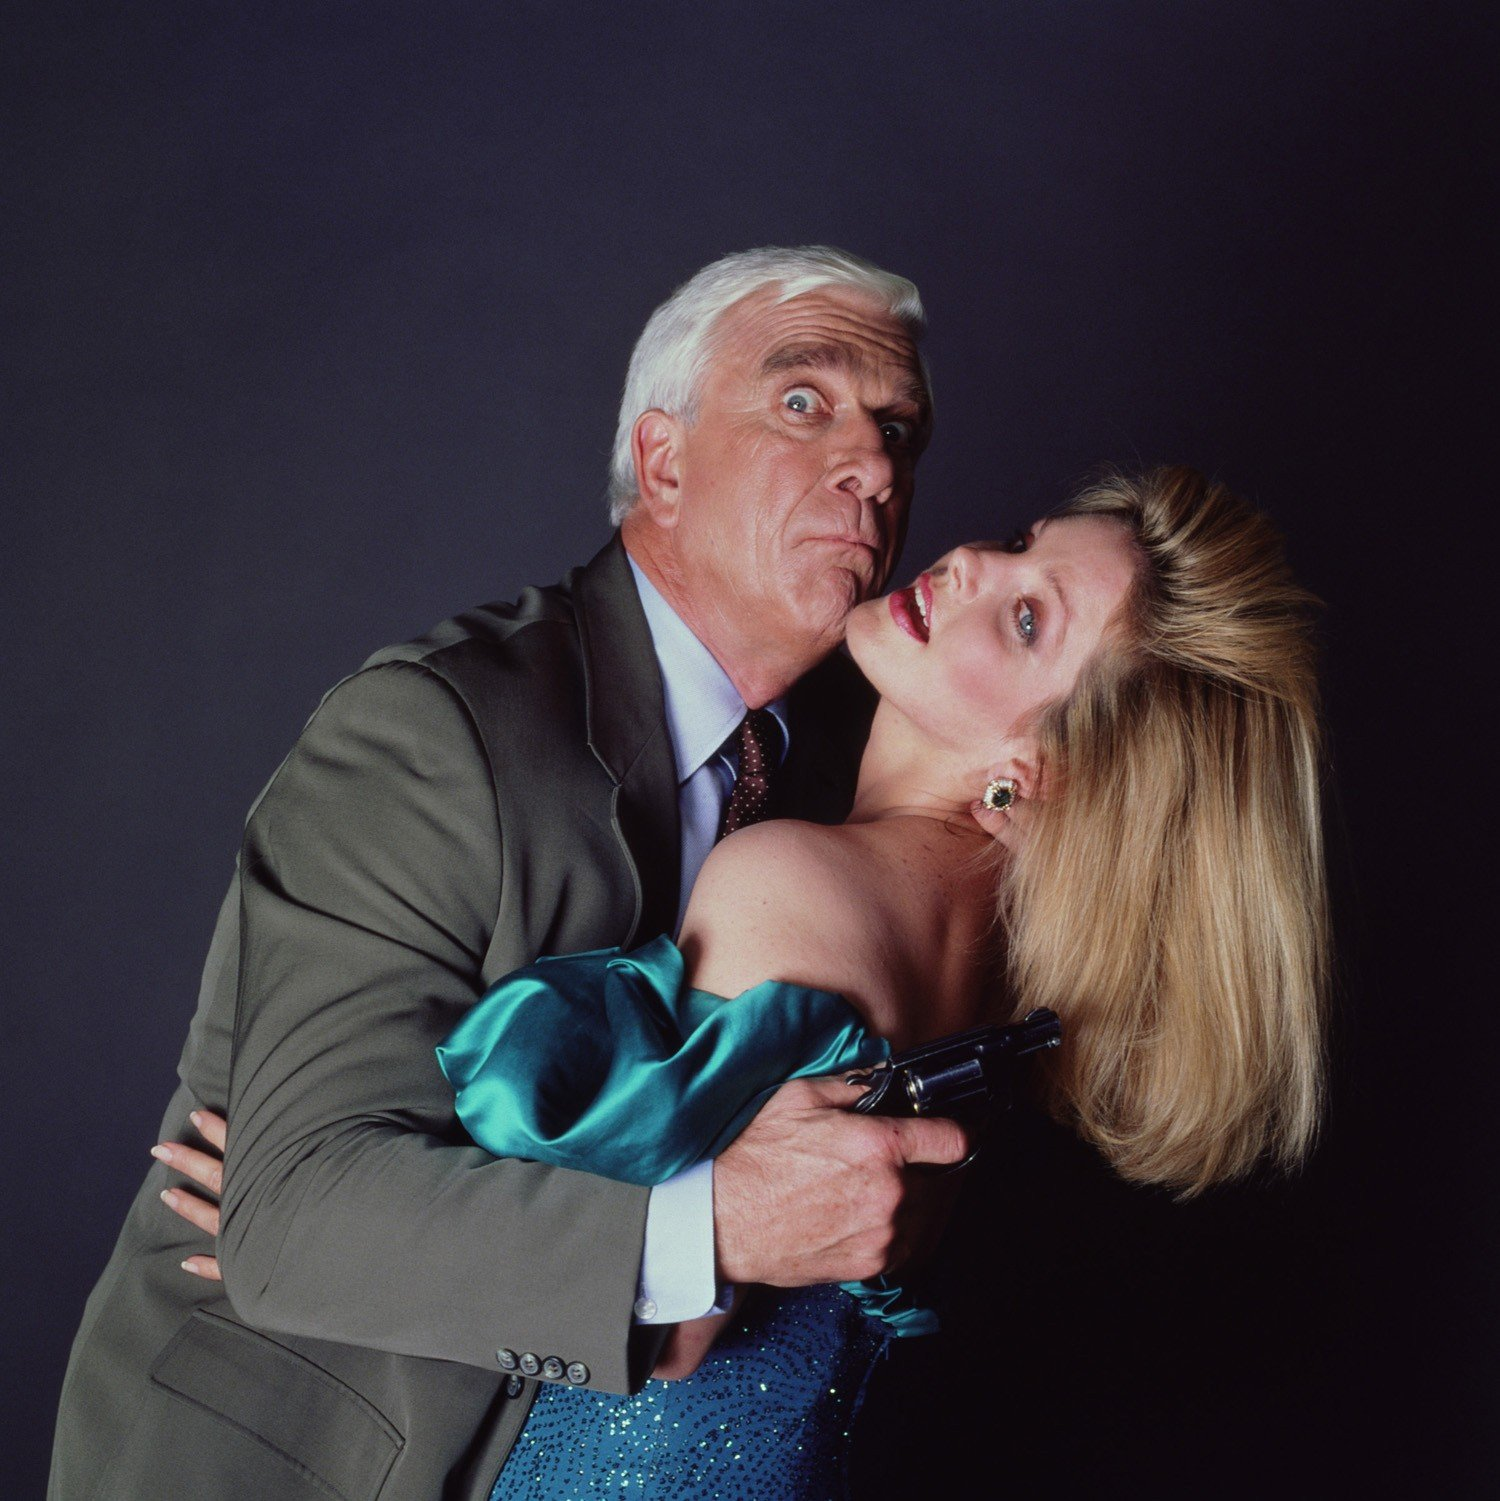 The Naked Gun 41701 High 20 Things You Might Not Have Realised About The Naked Gun